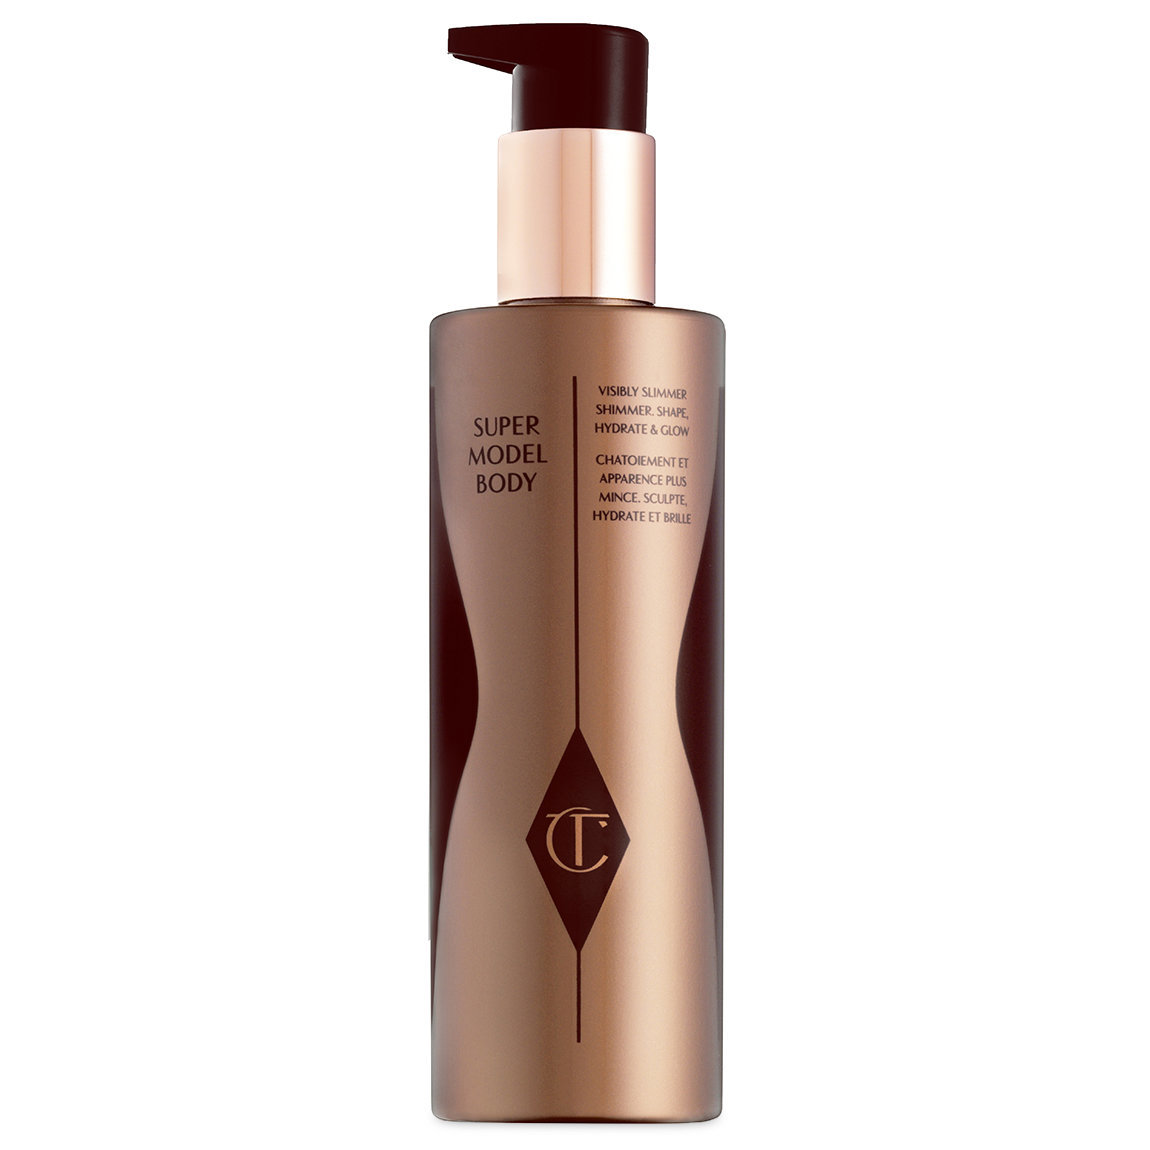 Charlotte Tilbury Supermodel Body 200 ml product swatch.